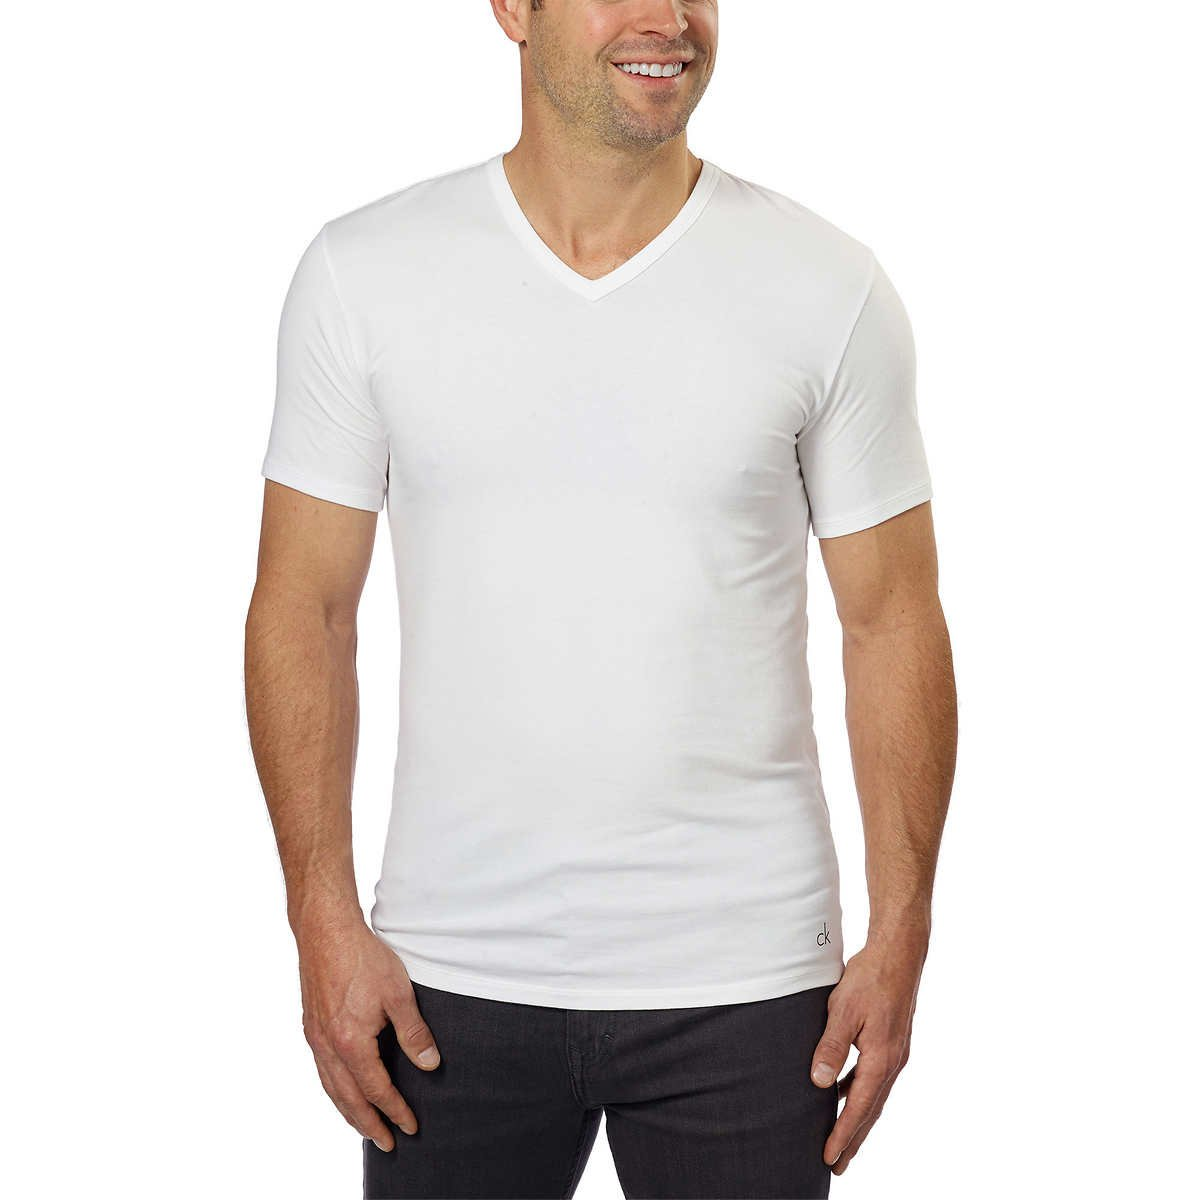 6b6a42d7d Galleon - Calvin Klein Cotton Stretch V-Neck, Classic Fit T-Shirt, Men's (3- pack) (White Or Black) (White, Medium)